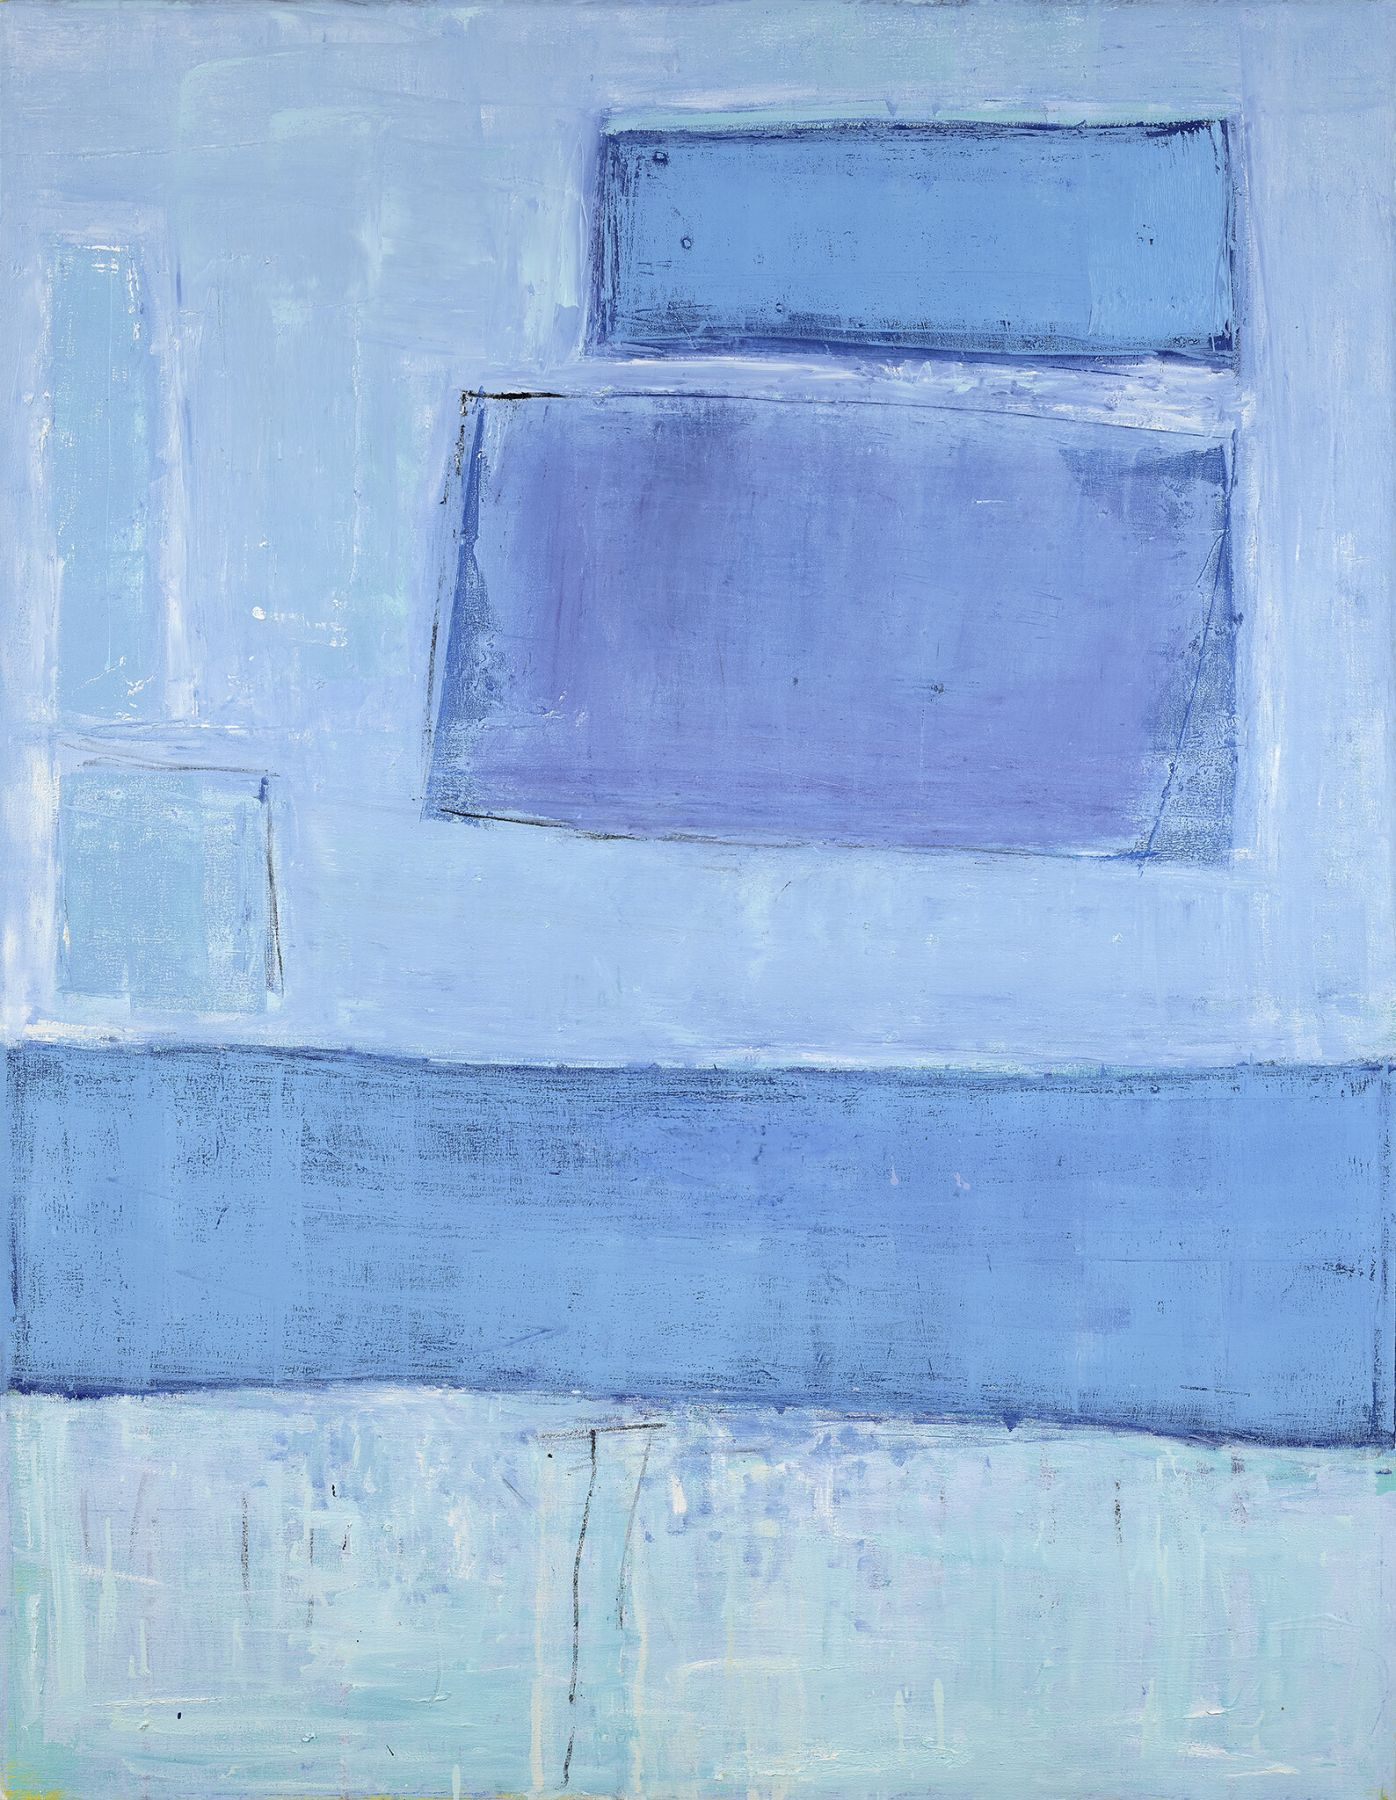 Katherine Parker, Pale Edges, 2017, Oil on canvas, 48 x 36 in..  Abstract work with different hues of blue in organic and gestural shapes. Katherine Parker is known for her large vividly painted canvases which are characterized by layers of stumbled and abraded oil paint.